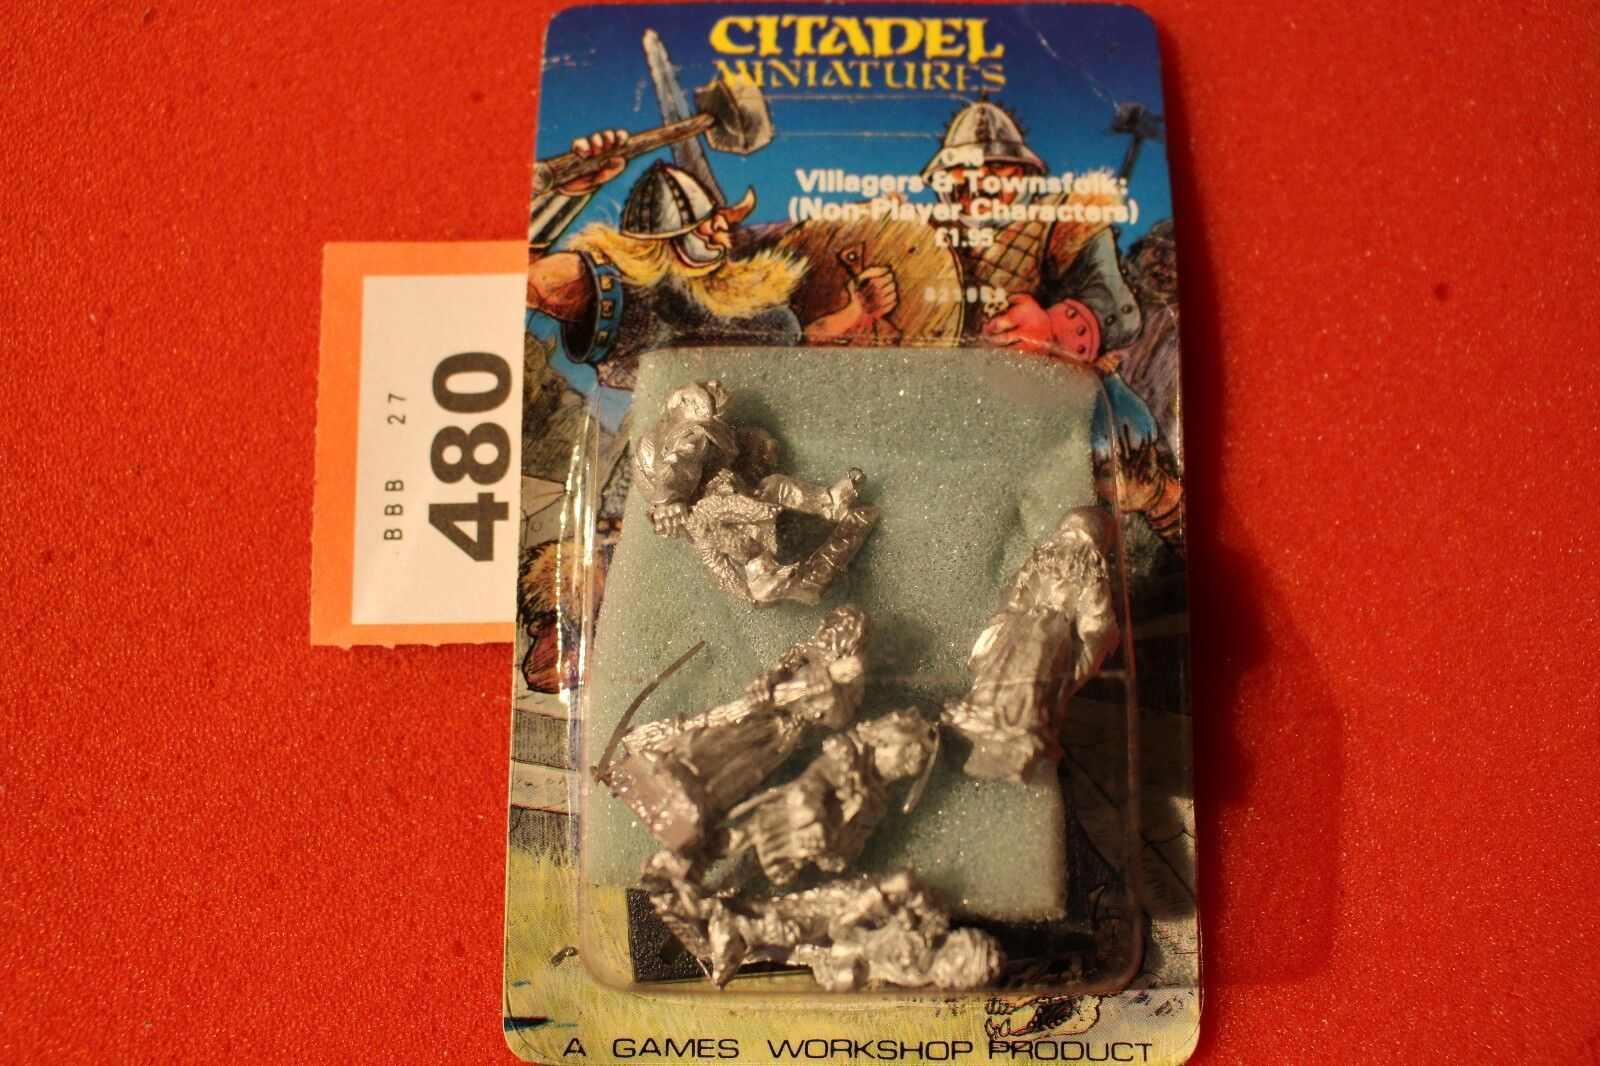 Citadel C46 villageois Townsfolk métal 5x Figurines Games Workshop Warhammer 80 S I